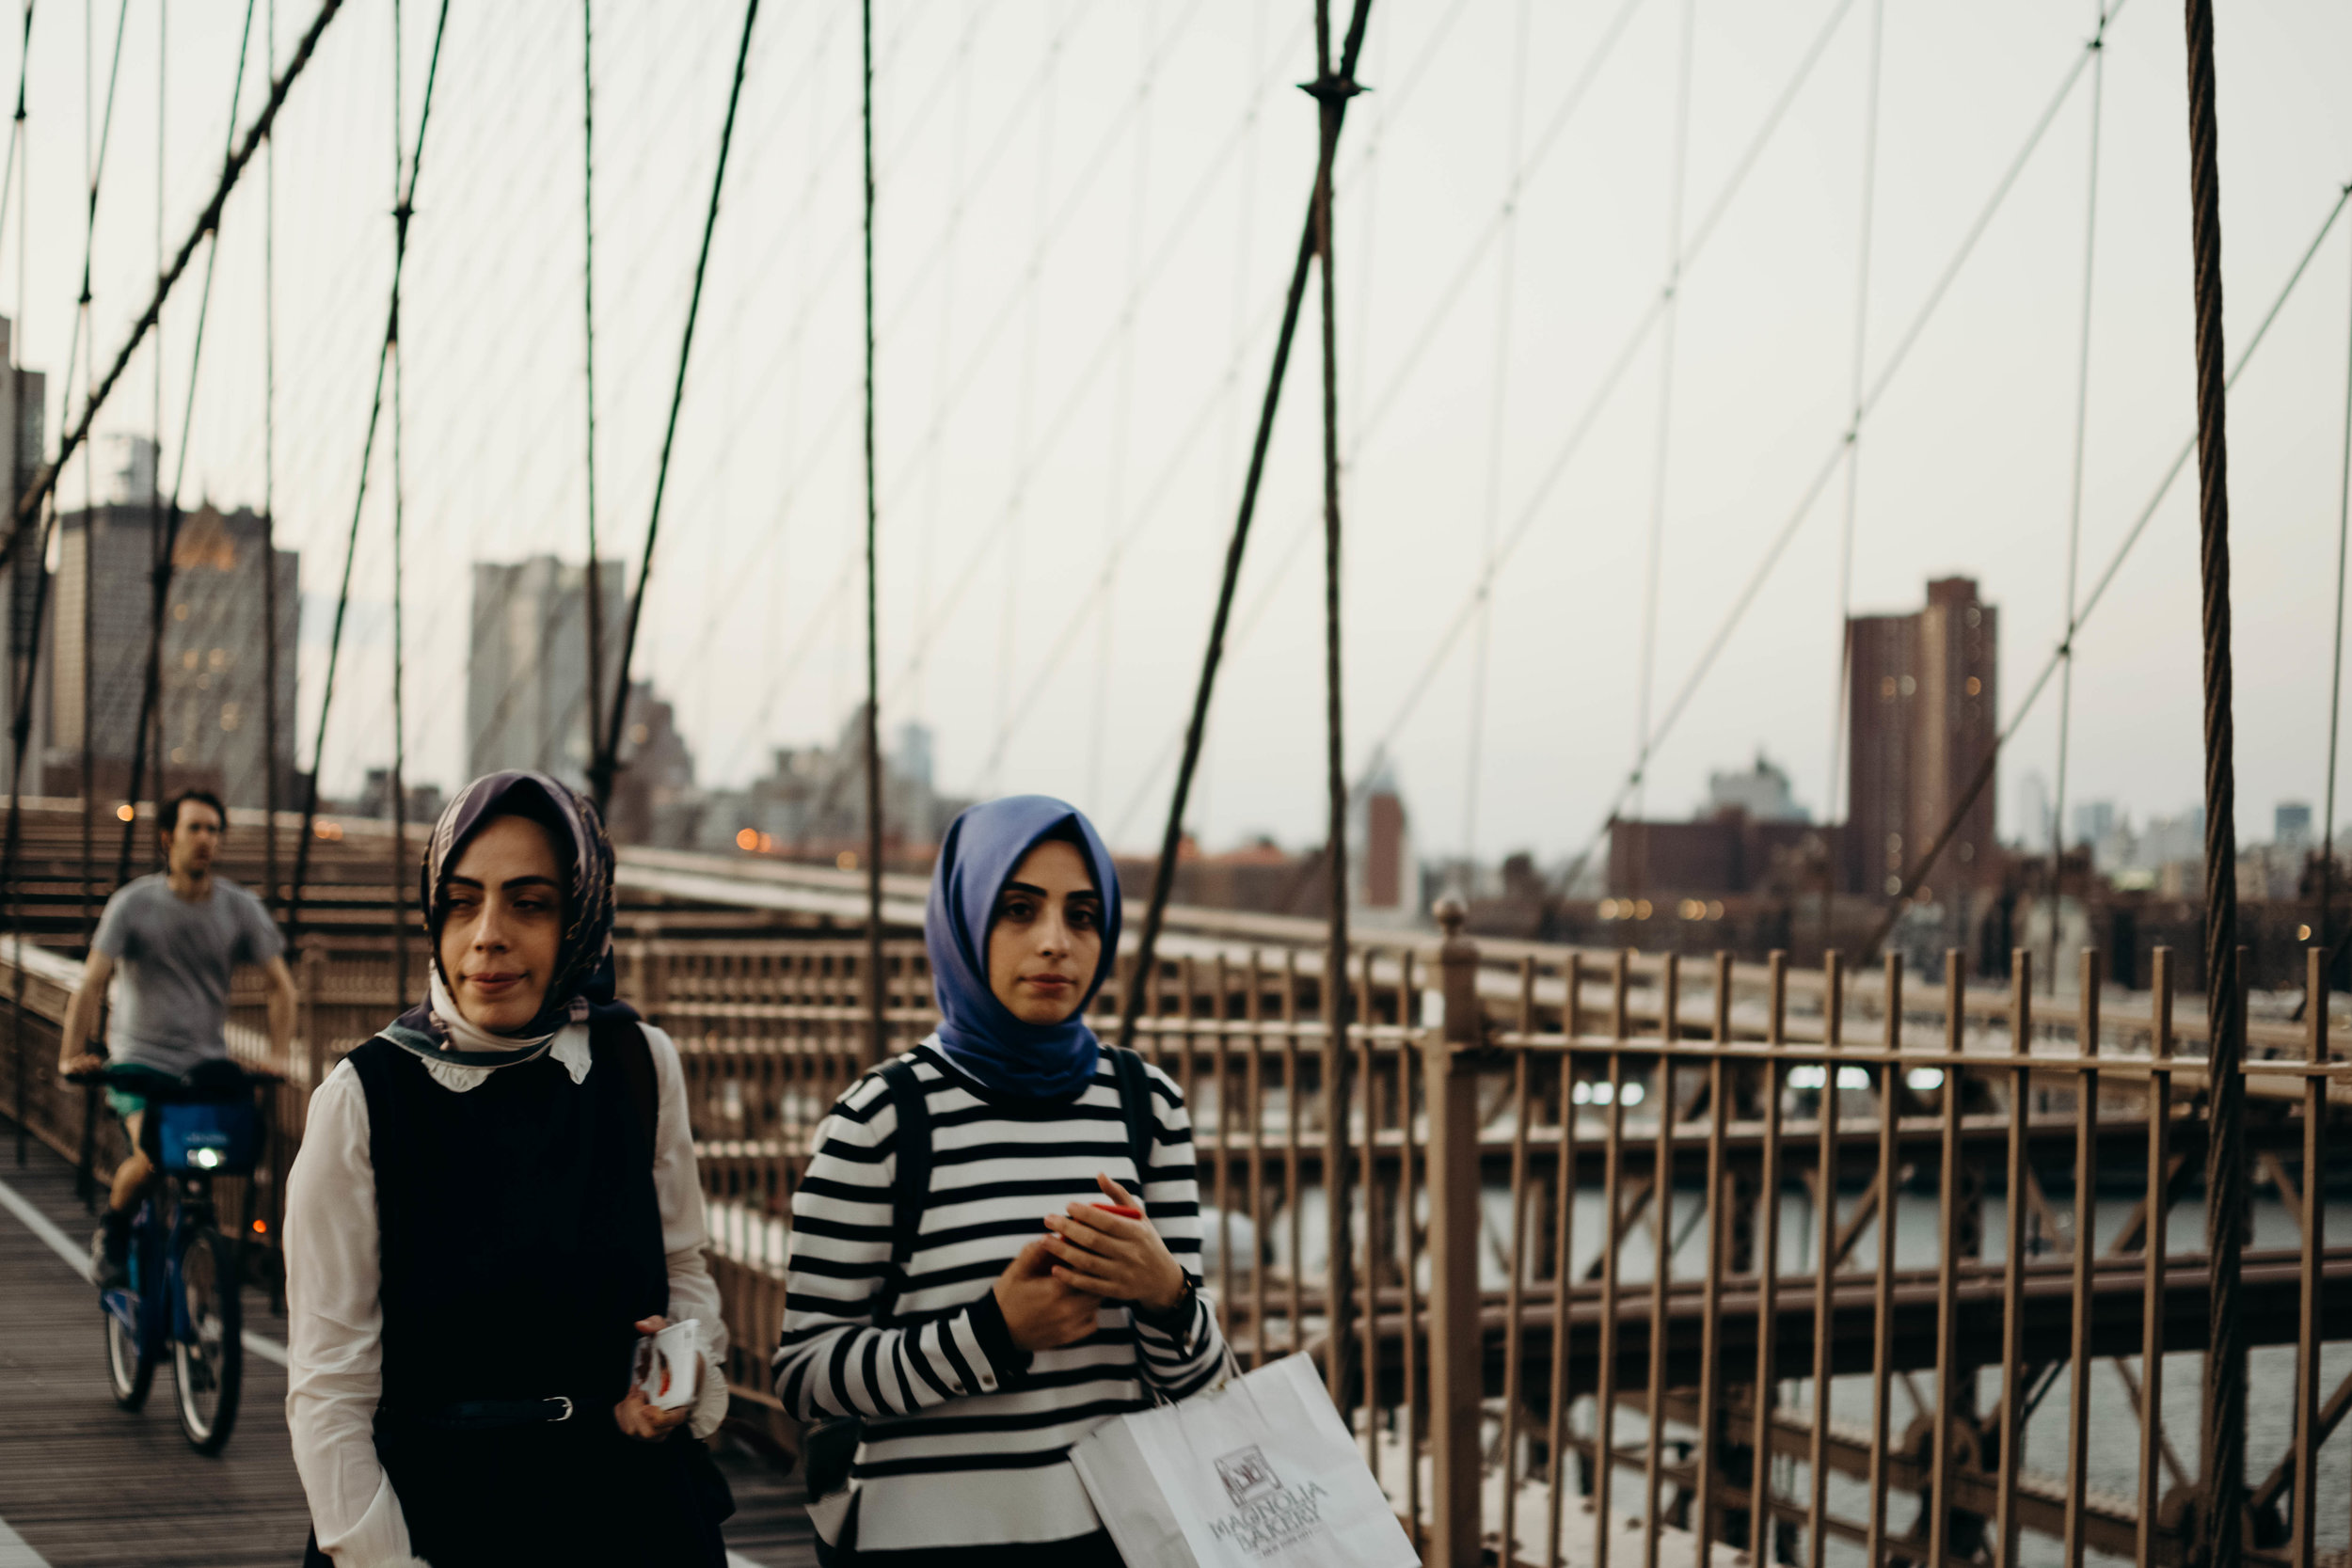 candid_brooklyn_bridge_travel.jpg